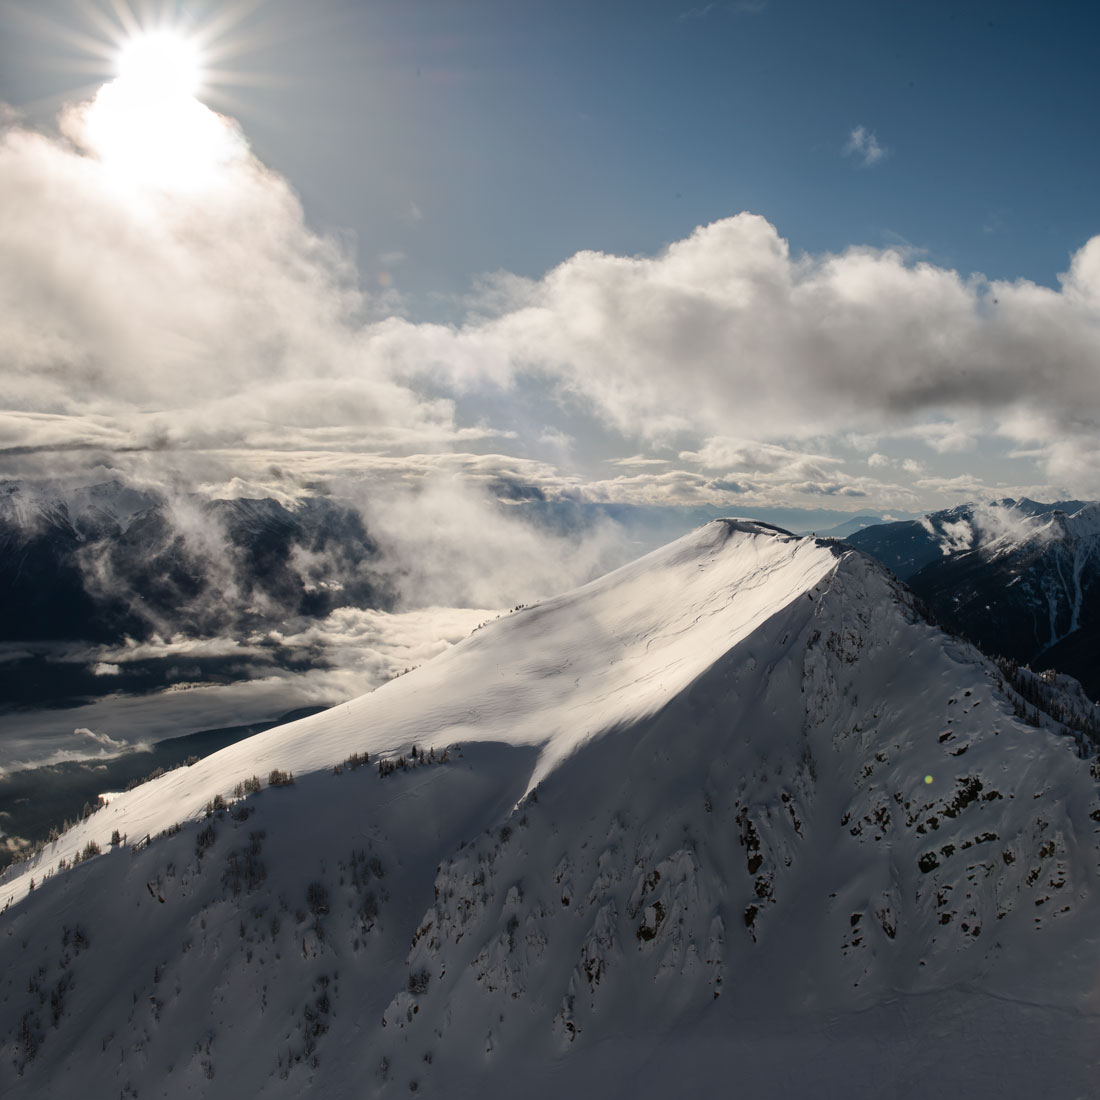 The sun cuts a dramatic shadow across the Purcell Mountains at Kicking Horse Resort